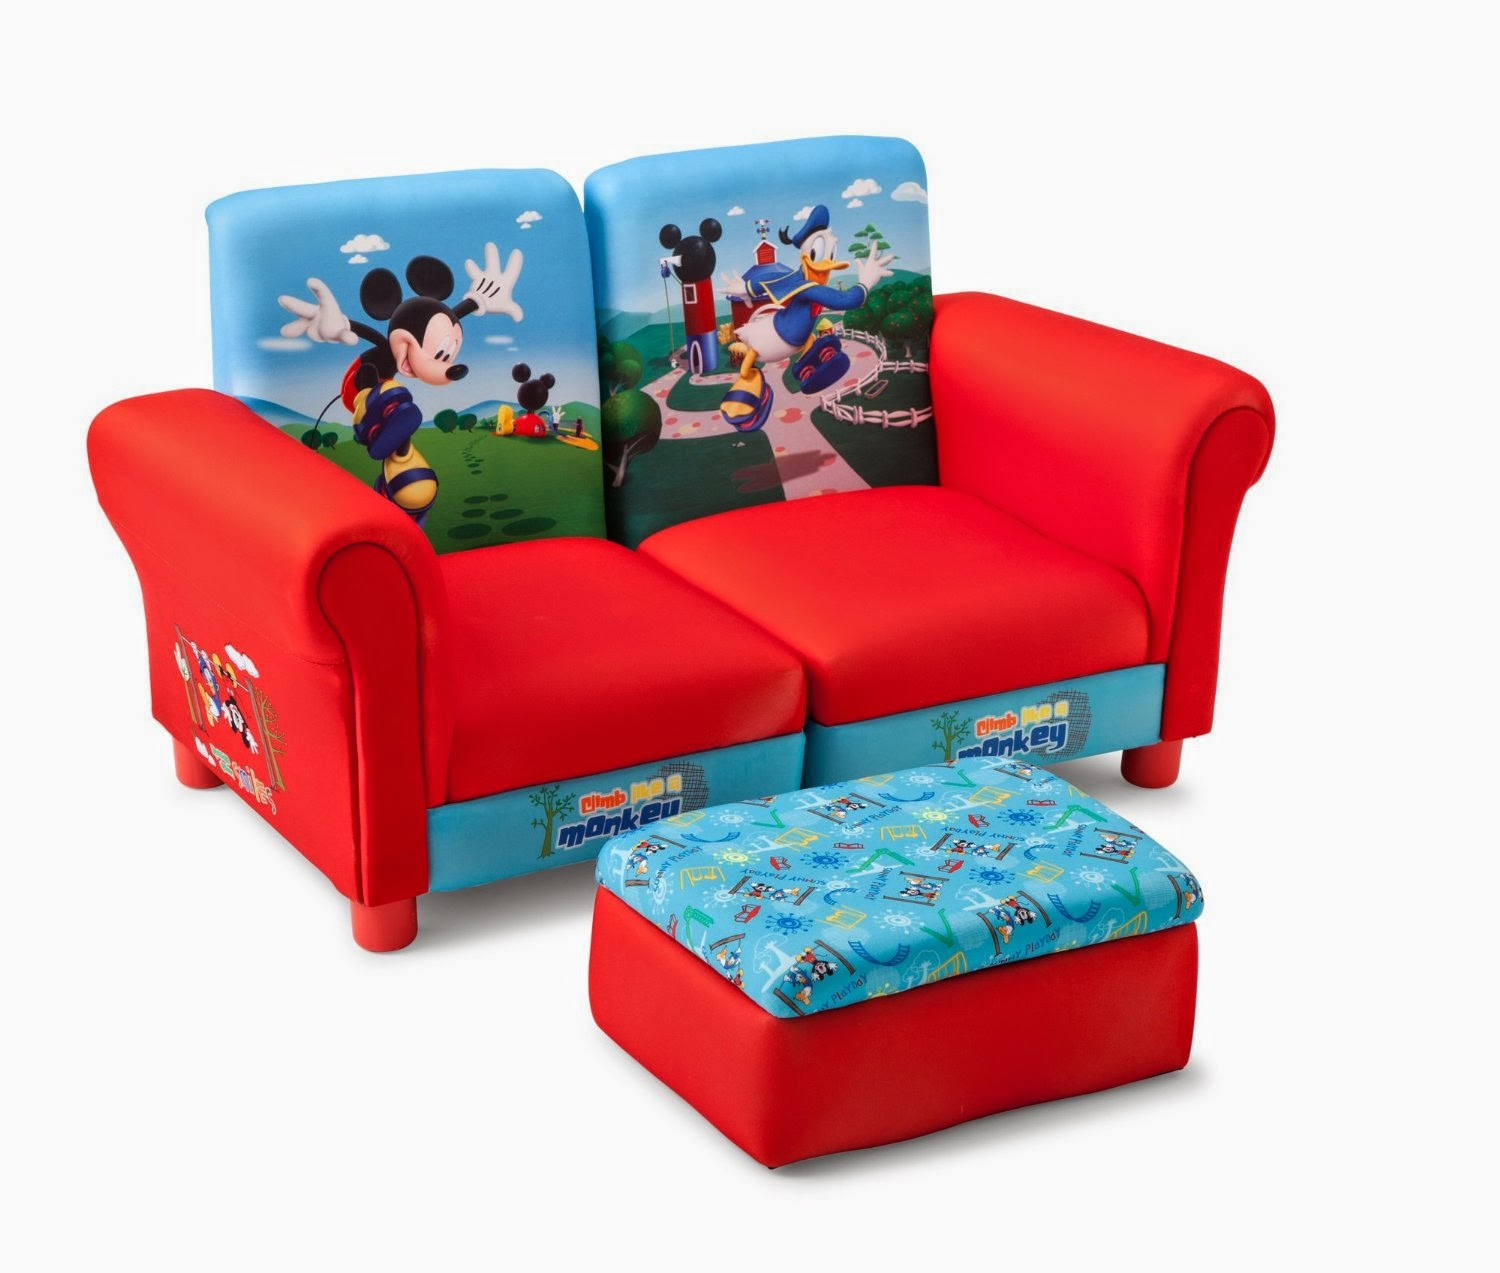 kids couch kids sectional couch : red kids sectional couch from kids-couch.blogspot.com size 1500 x 1273 jpeg 155kB